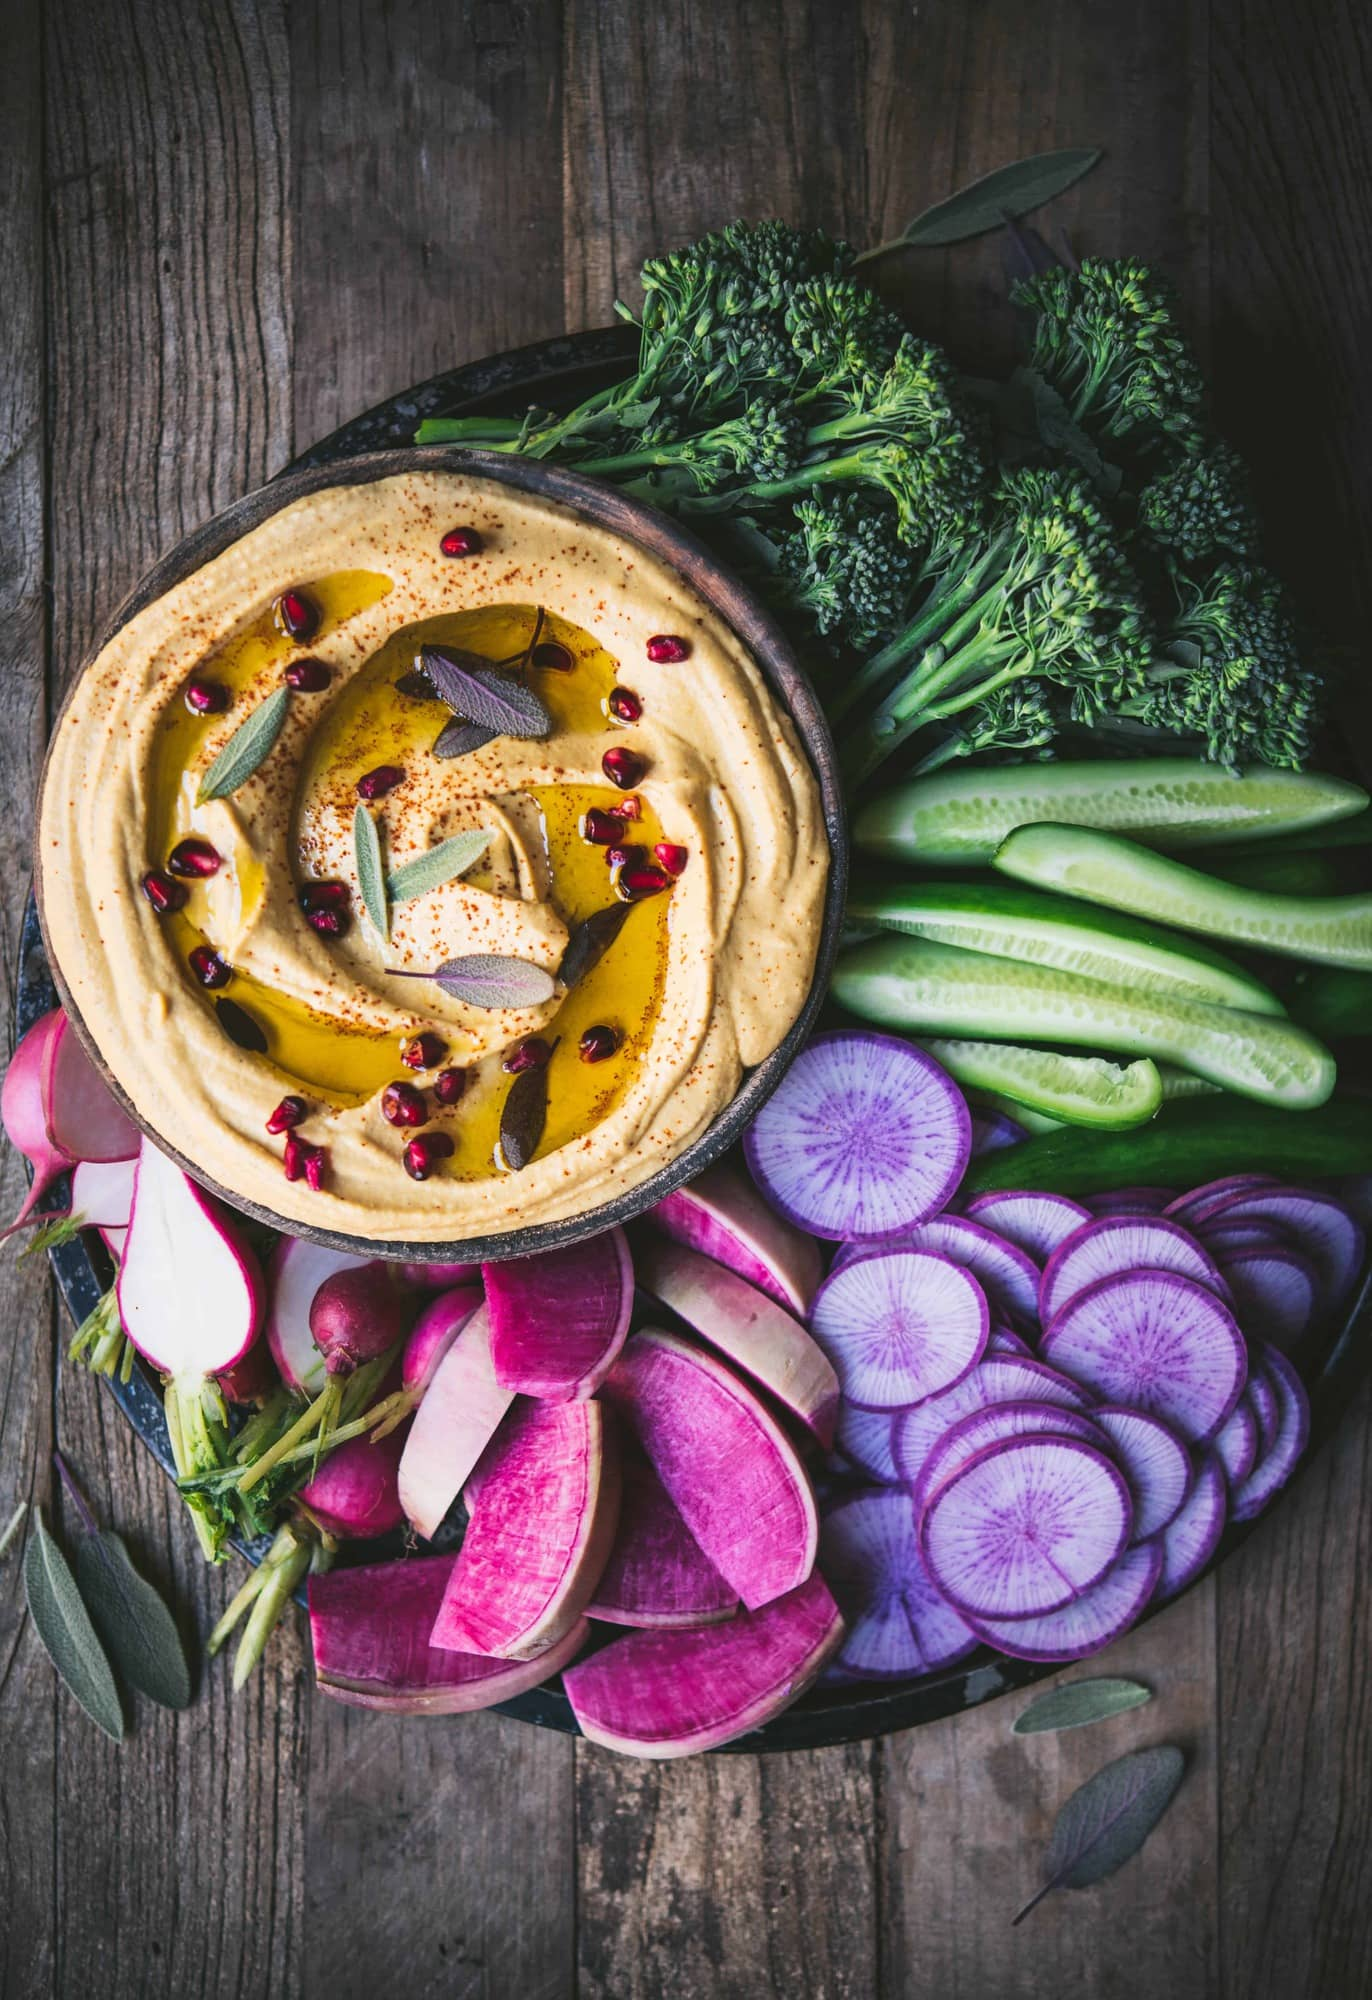 Colorful vegetable platter with bowl of creamy pumpkin hummus